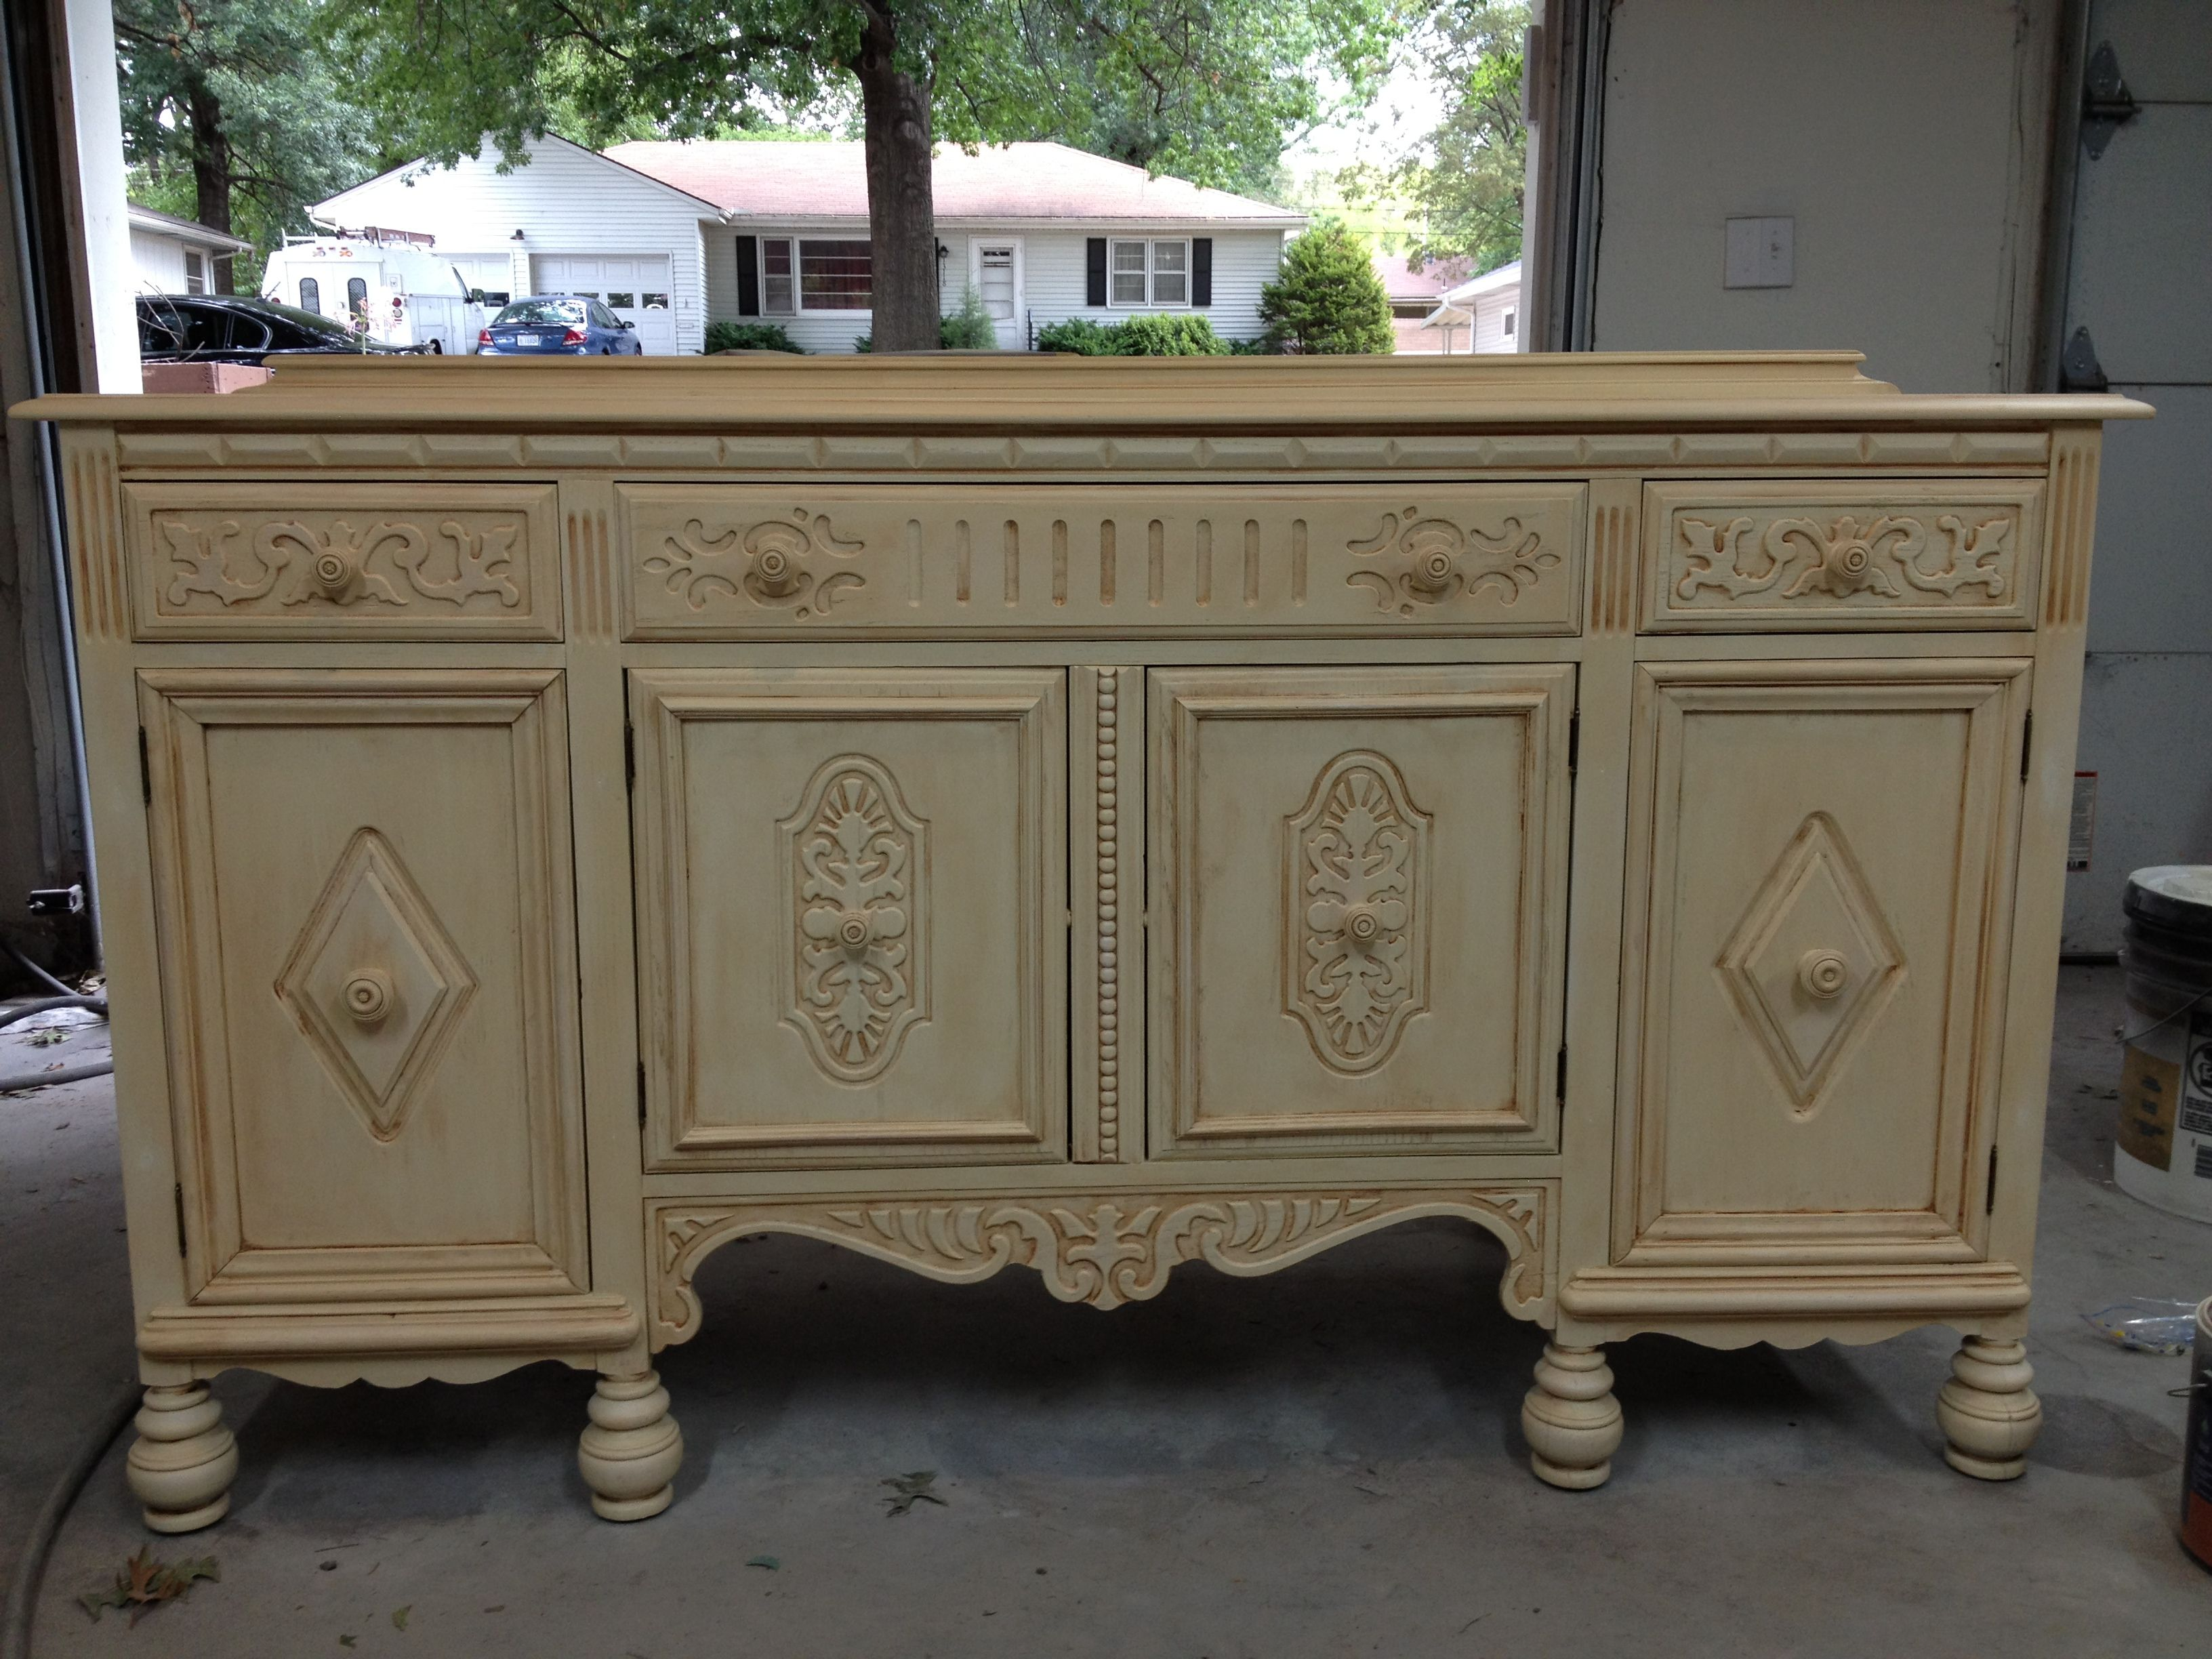 refurbished kitchen cabinets Antiqued buffet refurbished for tiny house kitchen cabinet add counter top